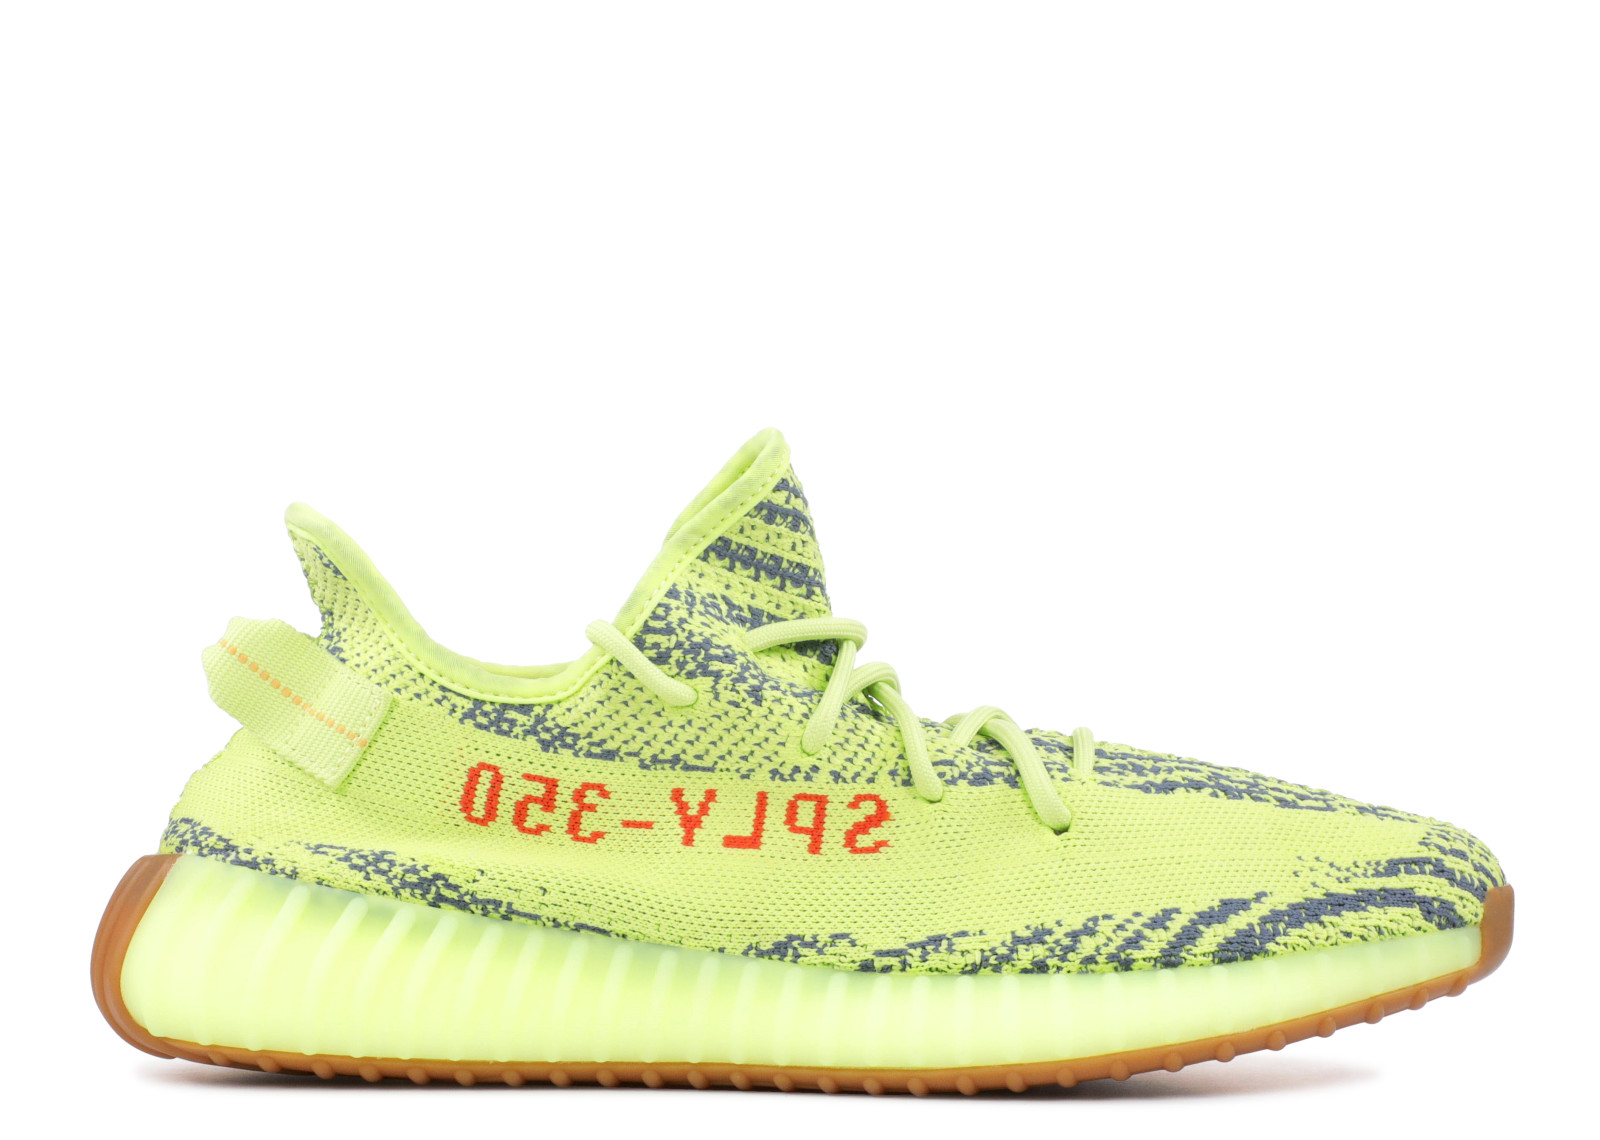 adidas yeezy boost 350 yellow